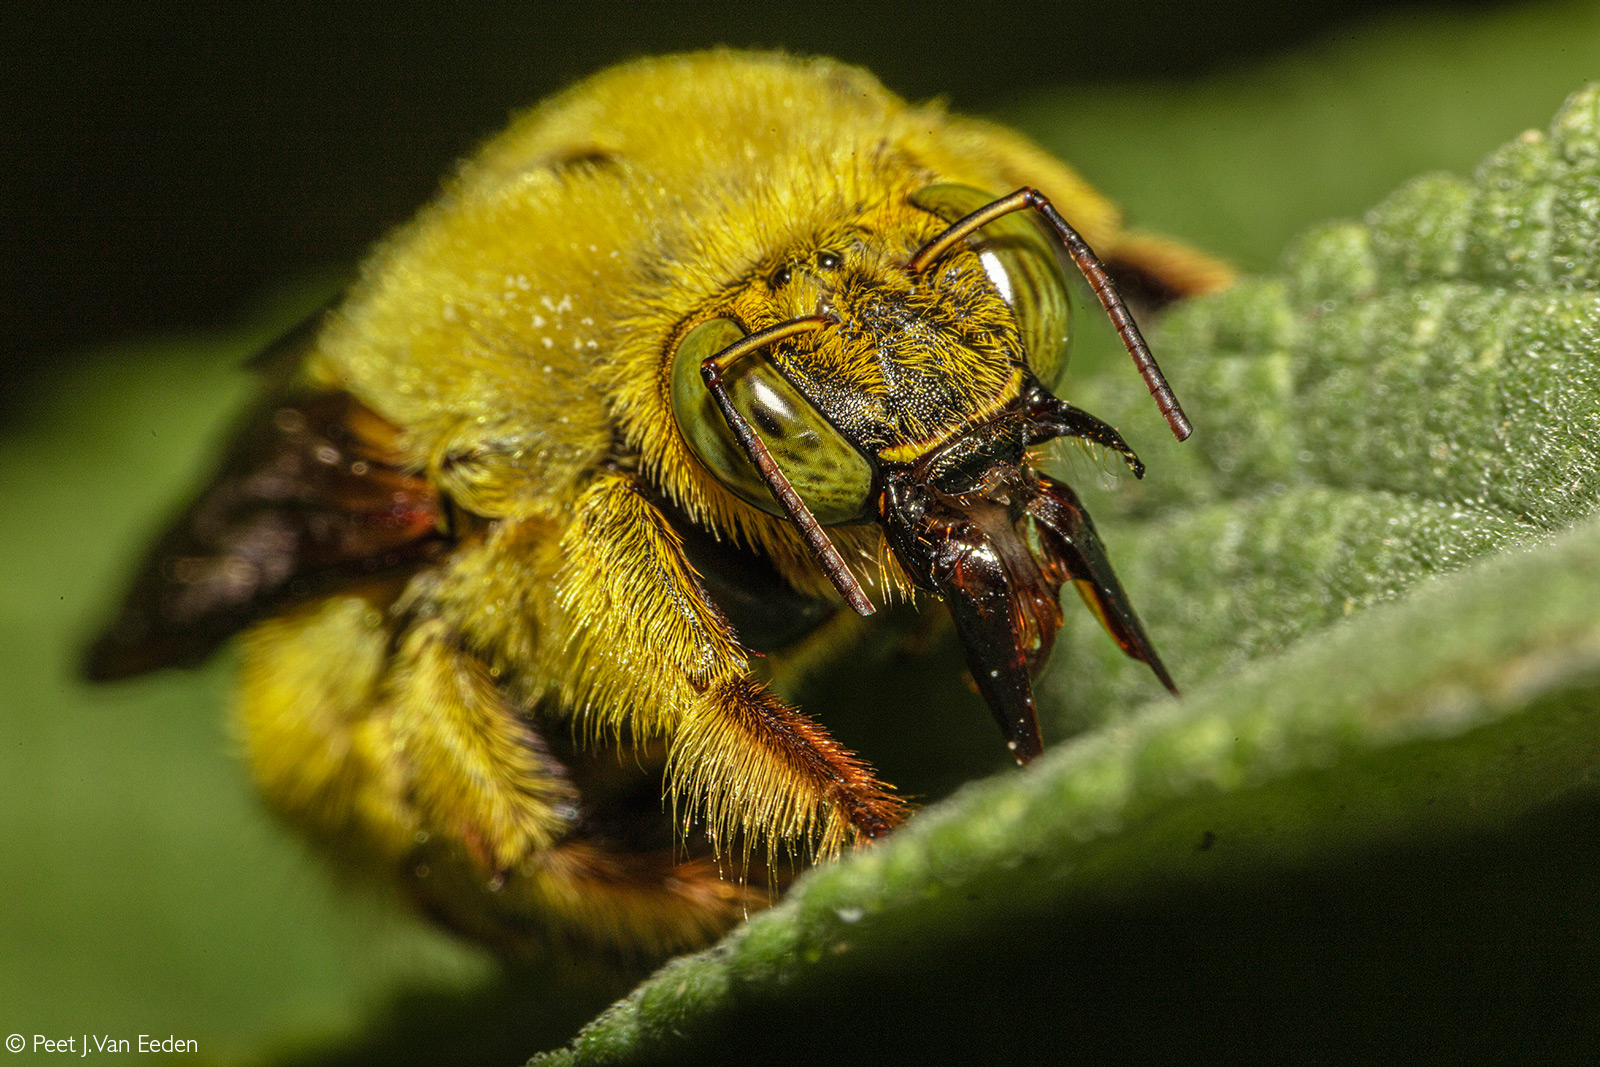 A macro close up of a male carpenter bee on a salvia plant. Carpenter bees construct their nests by boring tunnels in wood – hence their name. Cape Town, South Africa © Peet J. Van Eeden